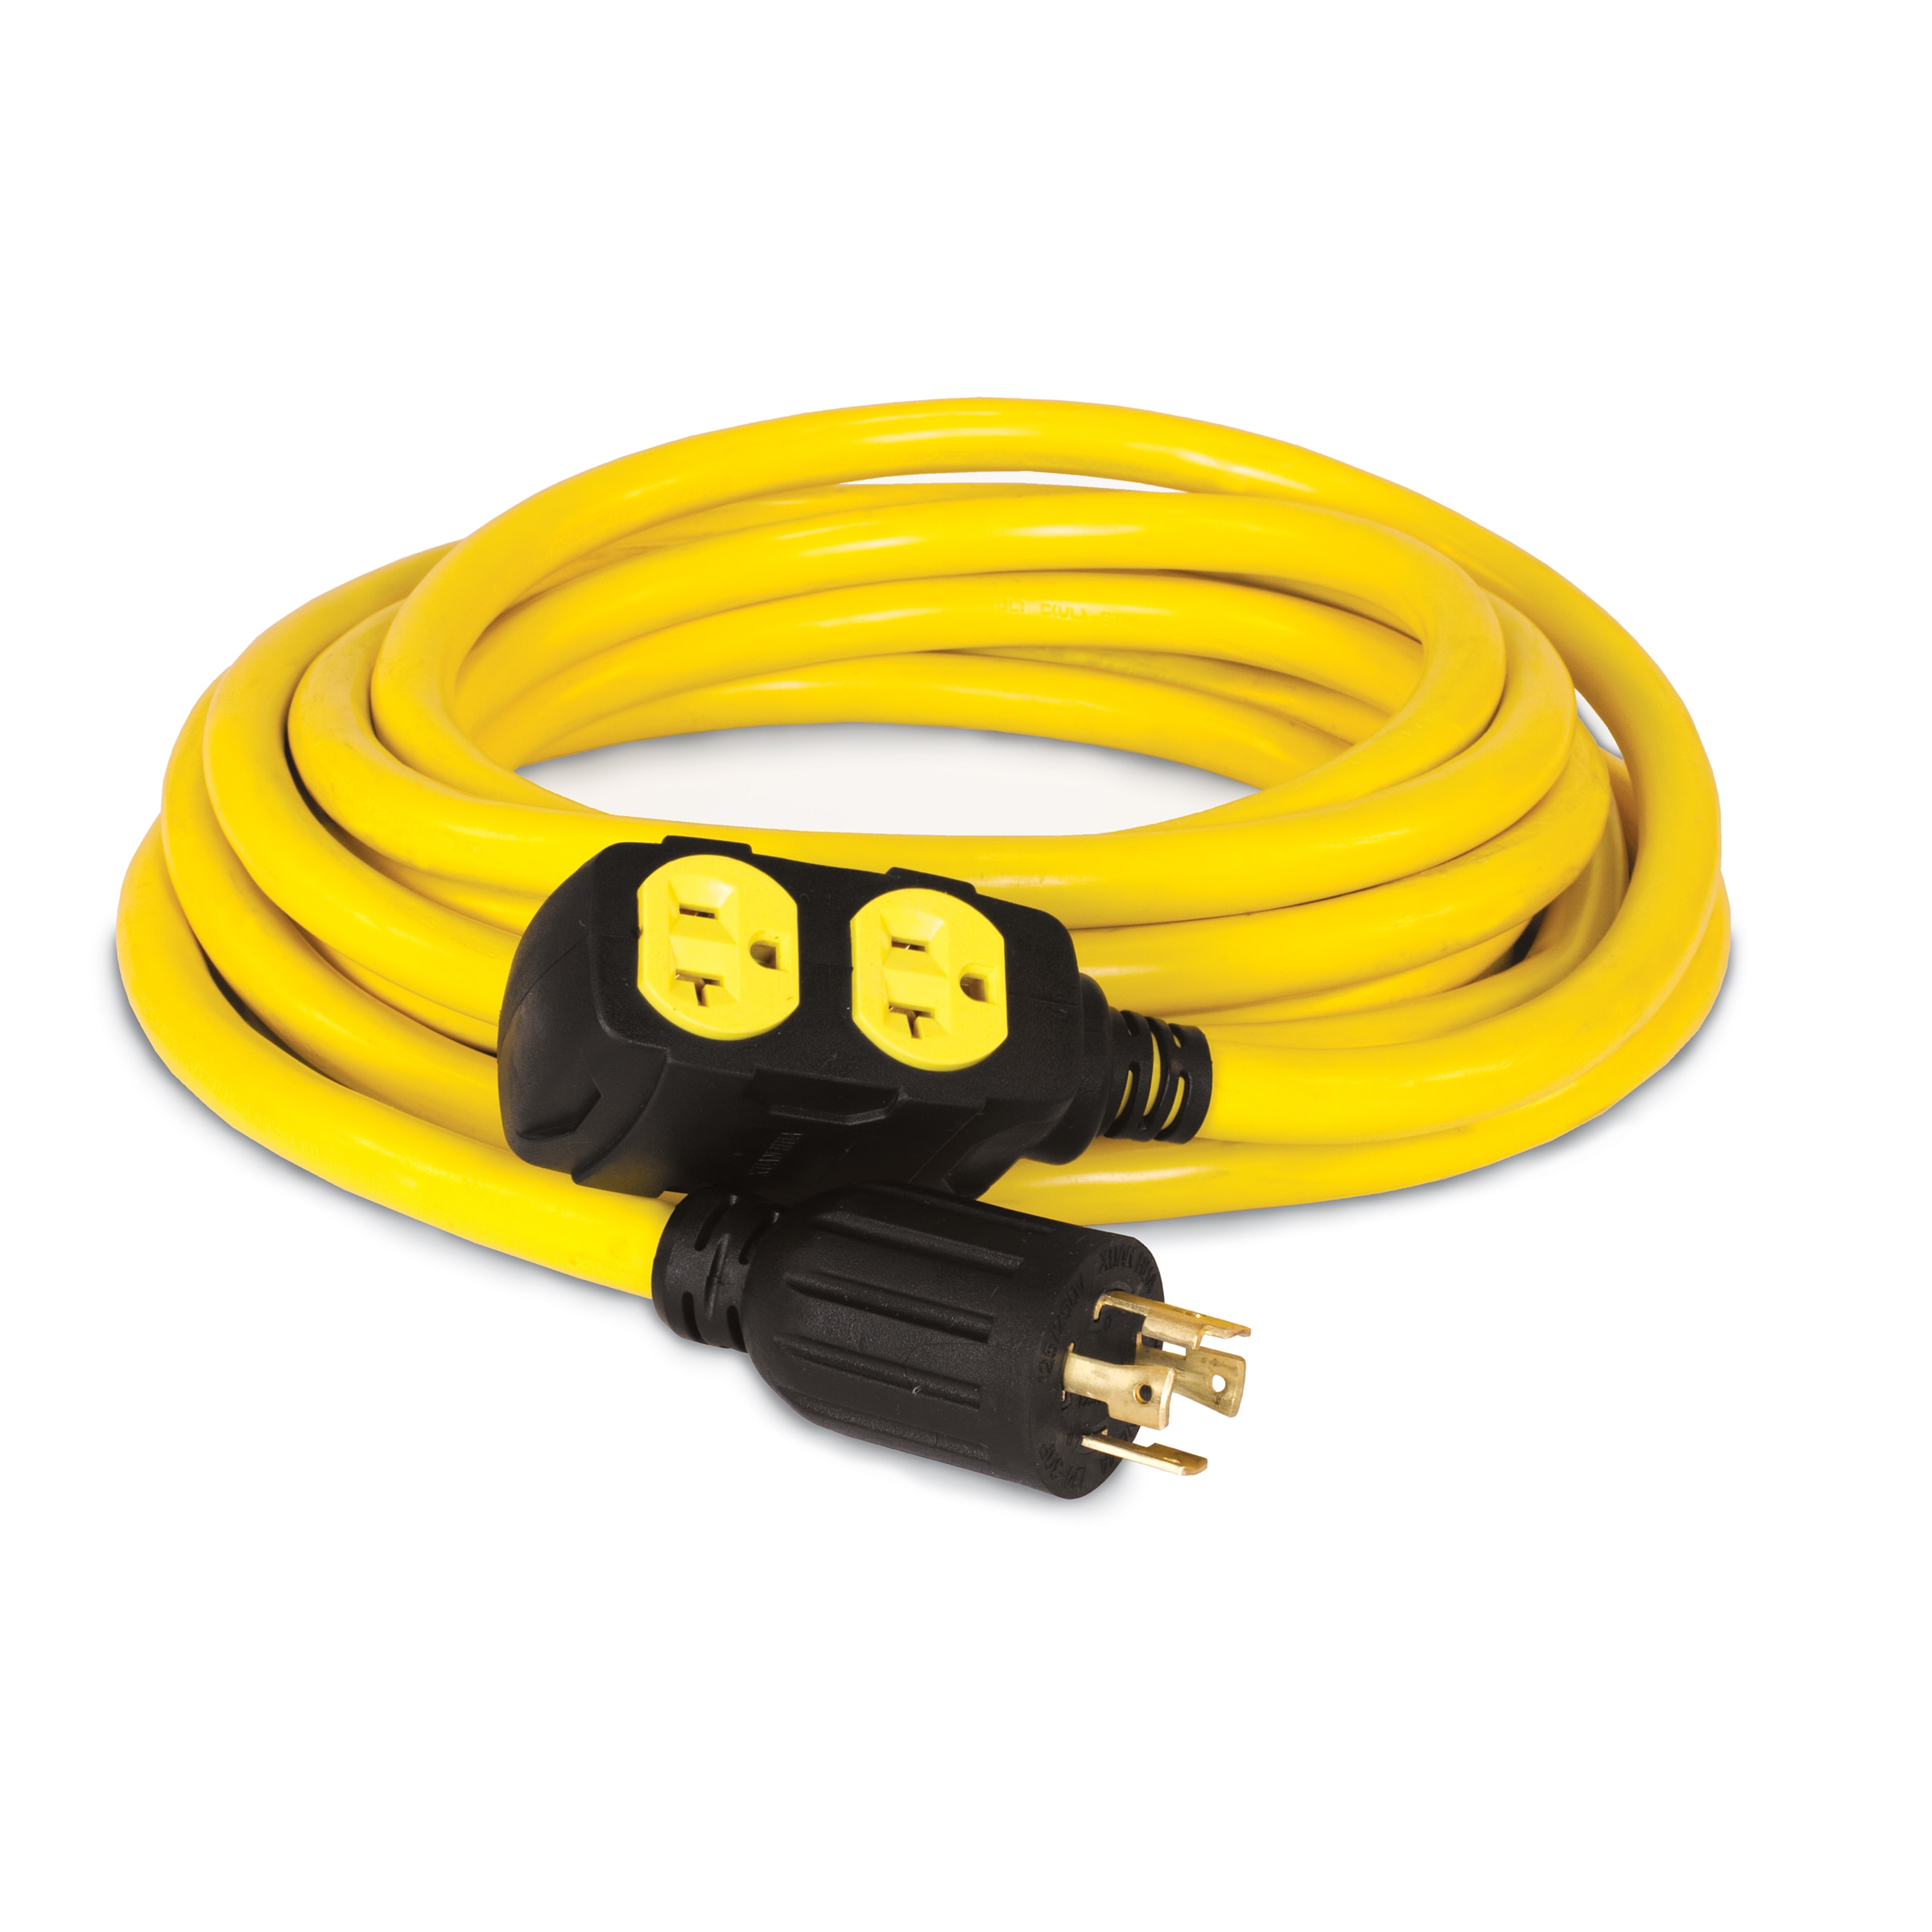 240v Extension Cord >> Champion 48033 25 Foot 30 Amp 125 250 Volt Duplex Style Generator Extension Cord L14 30p To Four 5 20r